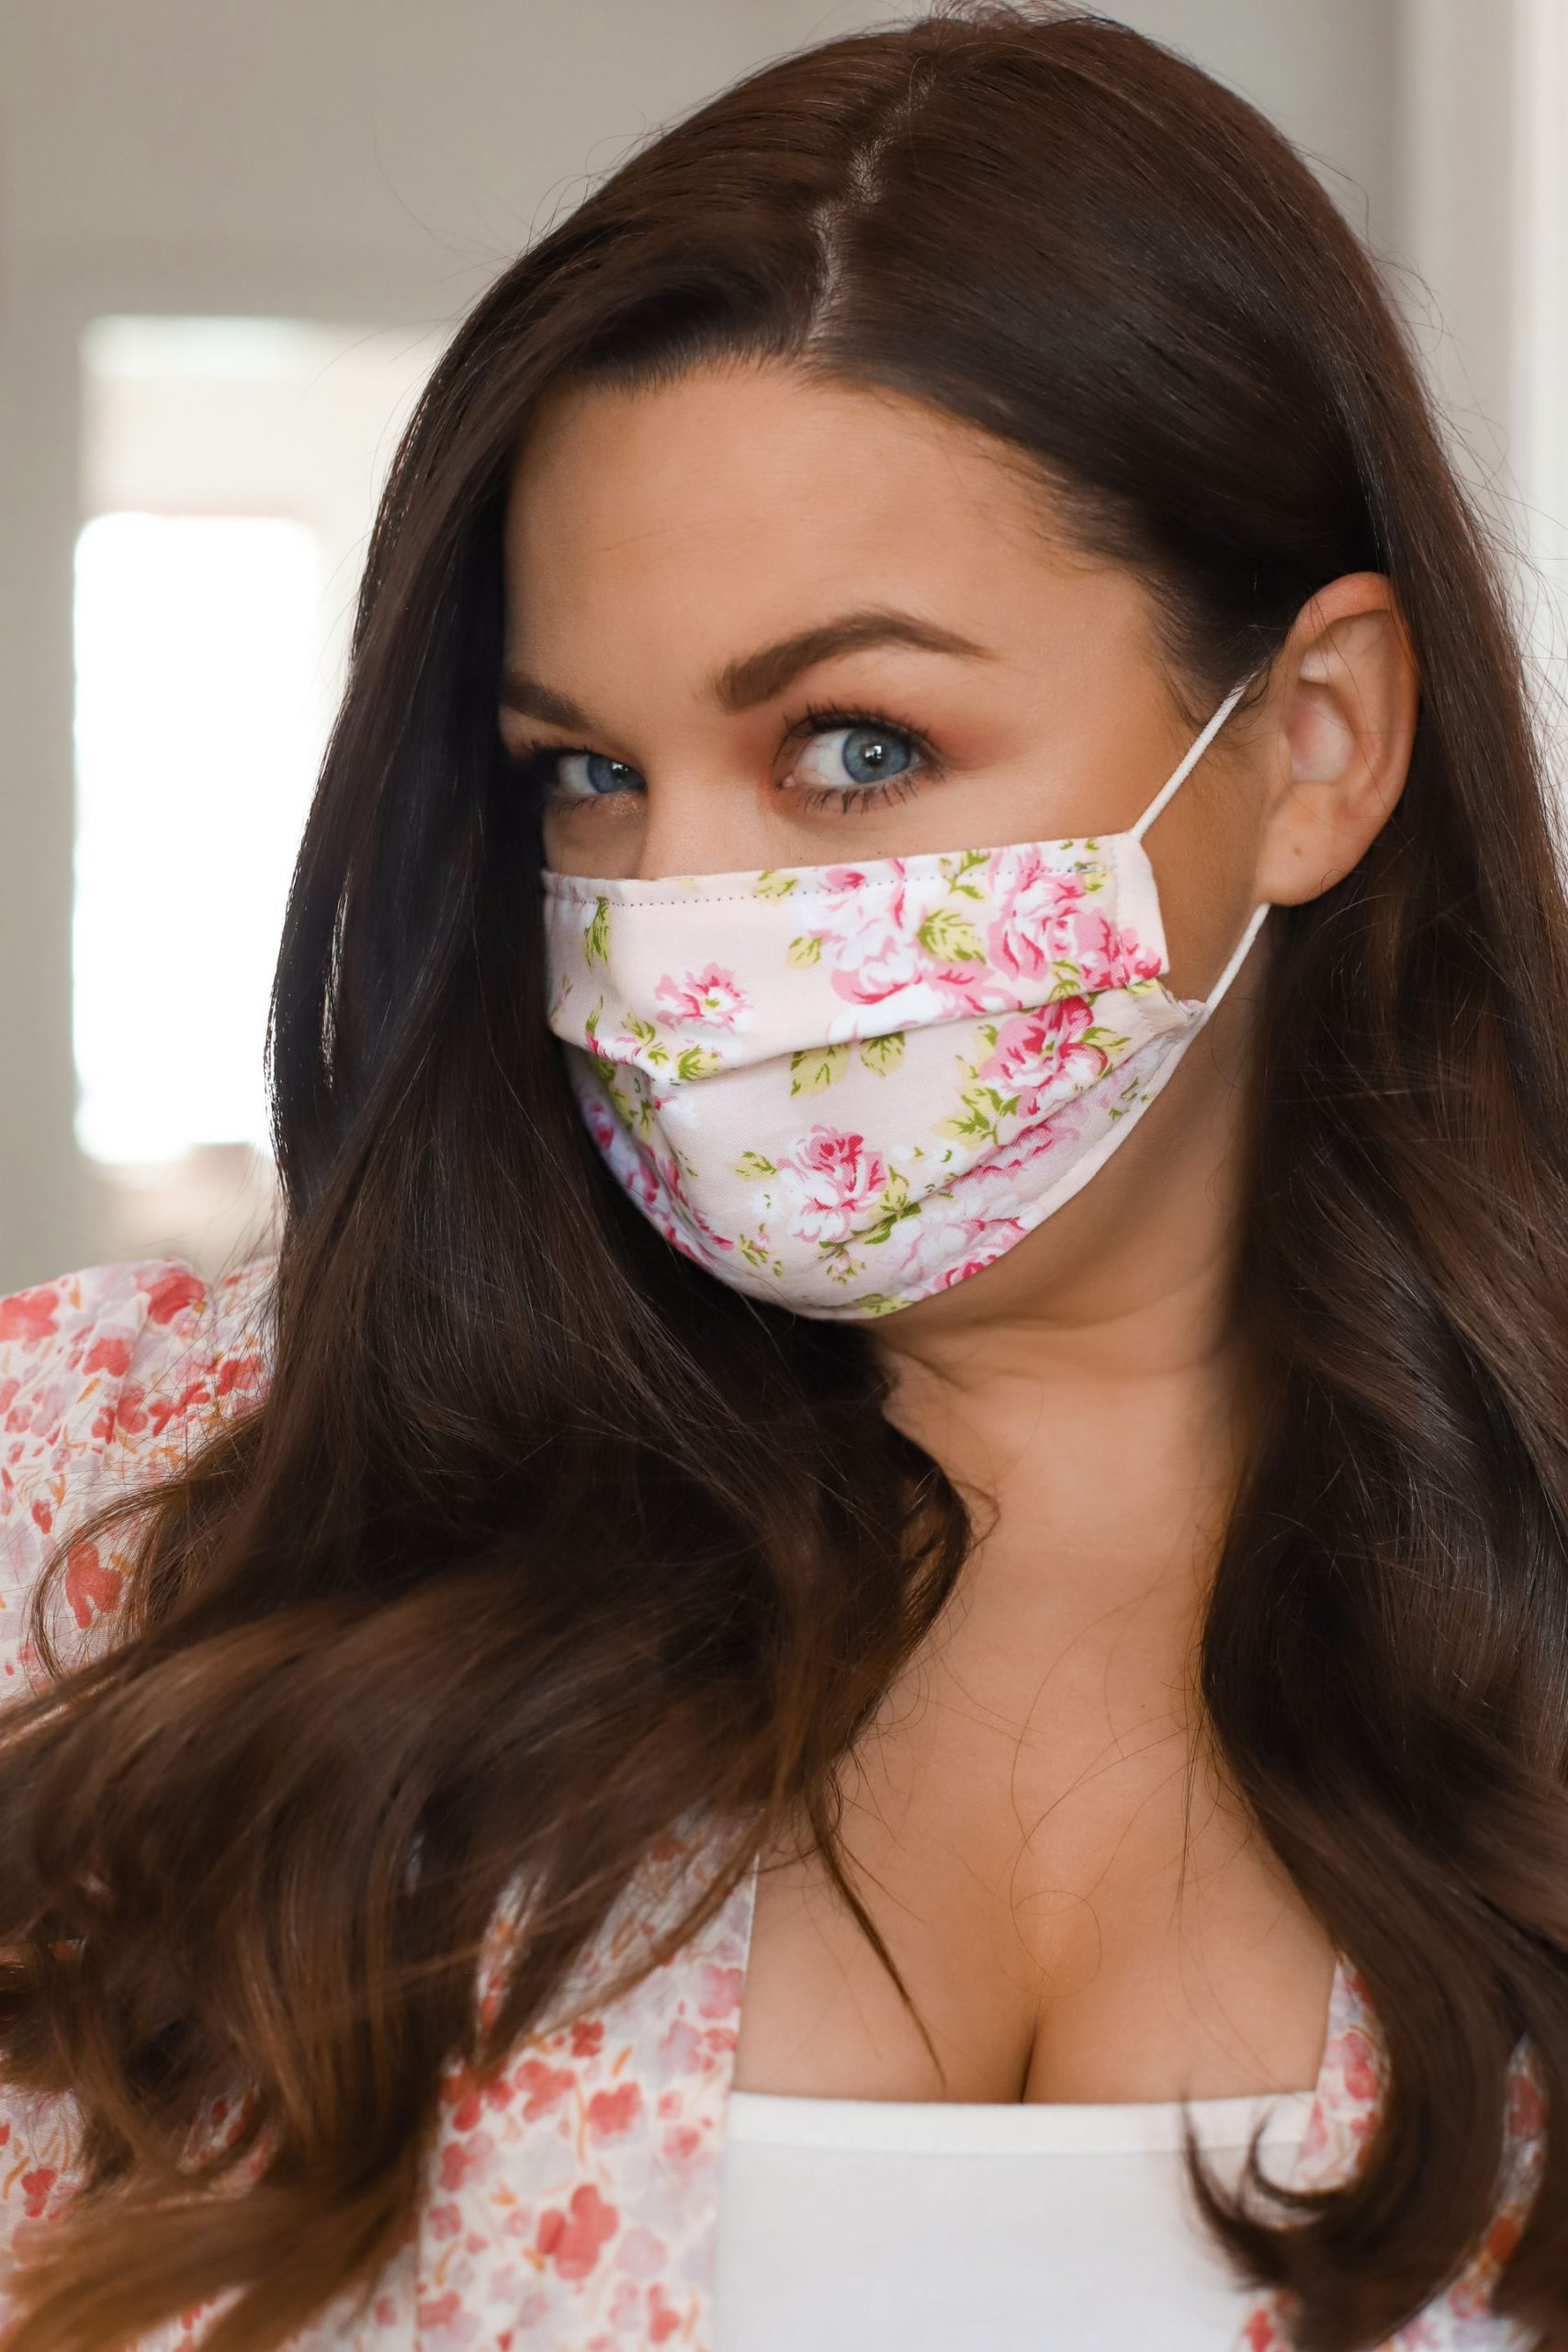 How To Make a Reusable Face Mask, Easy Sew